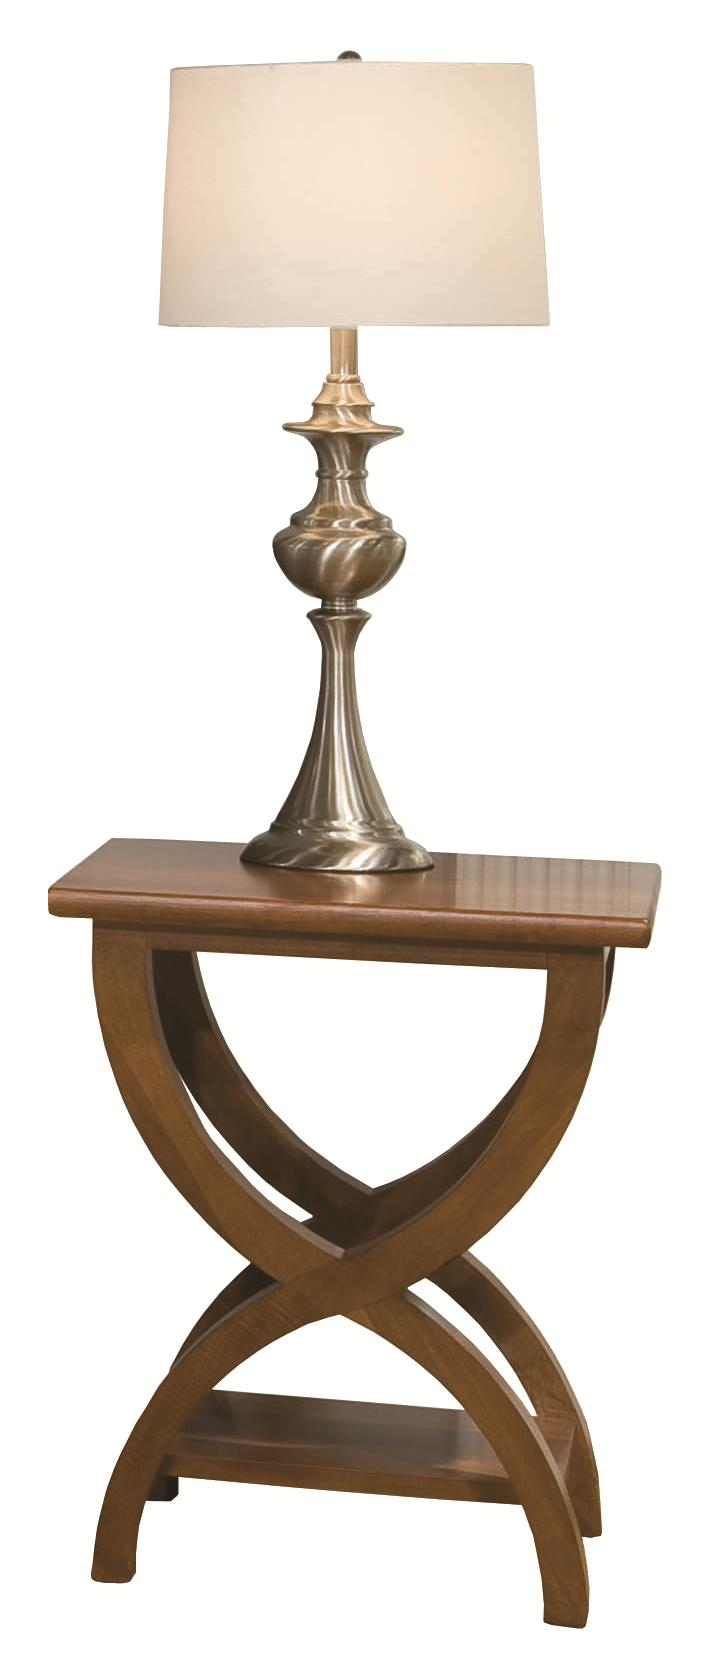 Occasional Tables Durham Transitional Chairside Table by Durham at Jordan's Home Furnishings